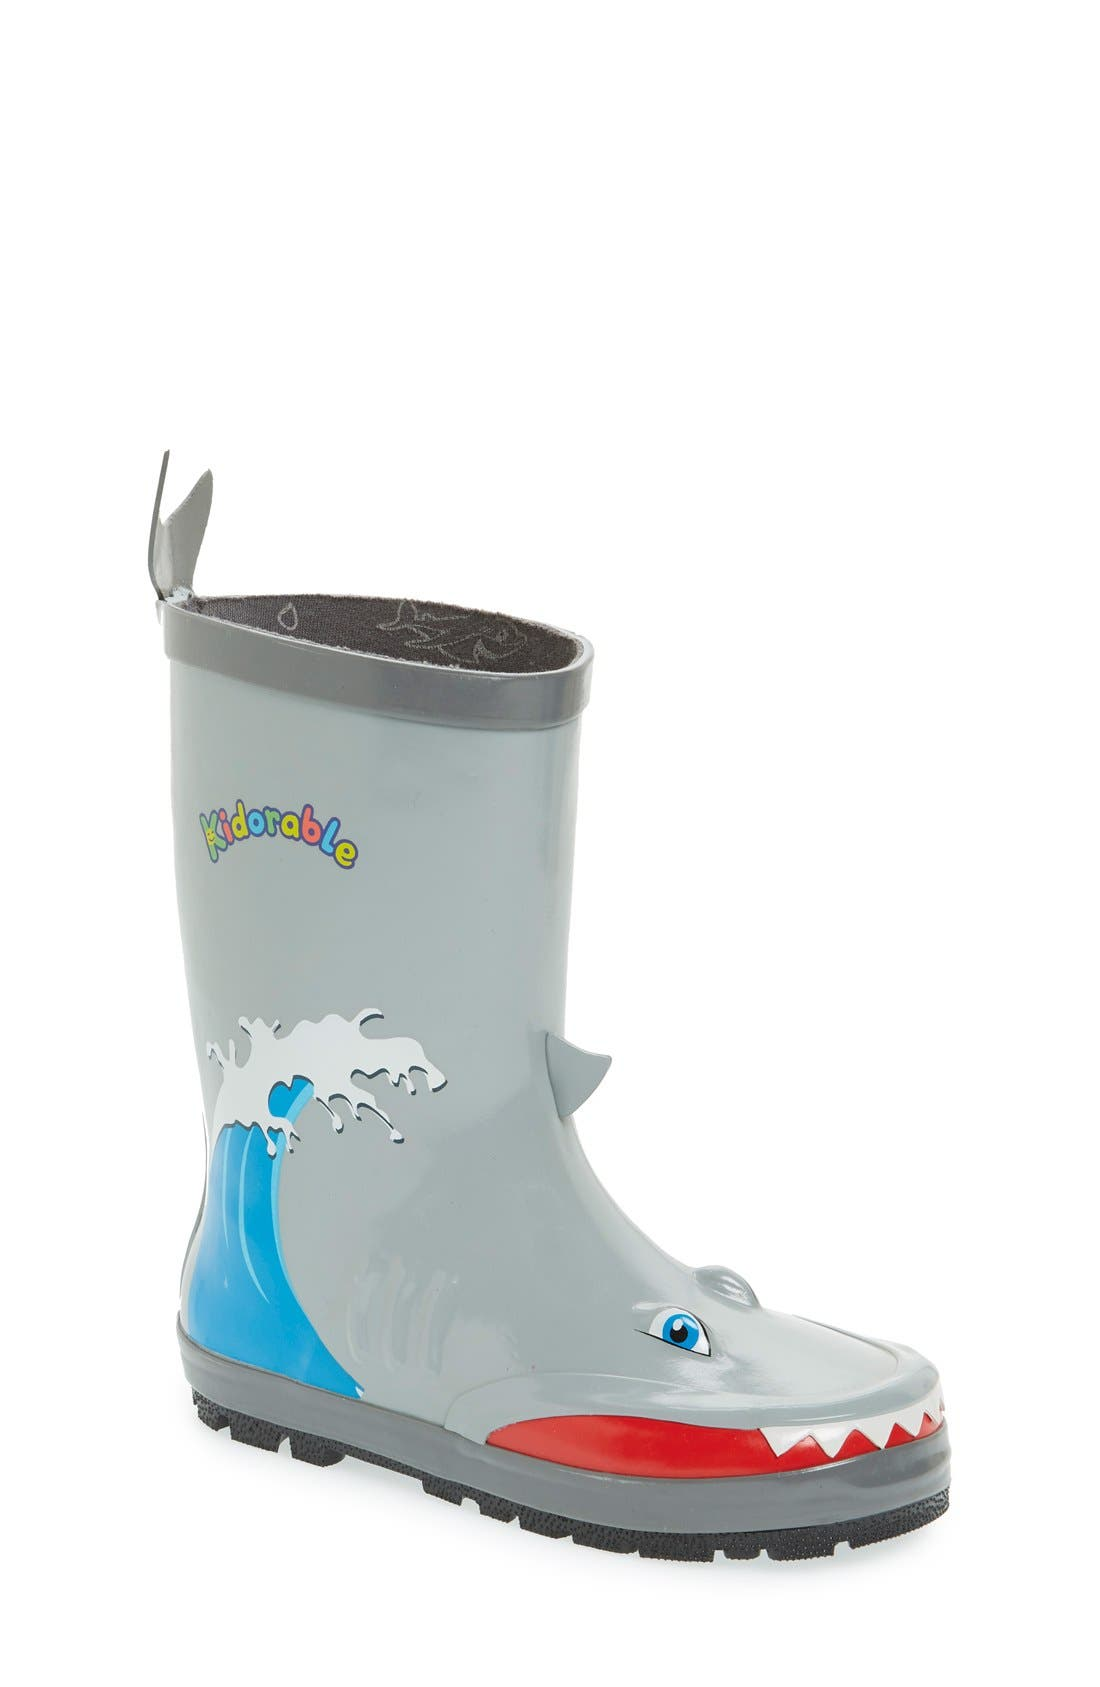 KIDORABLE 'Shark' Waterproof Rain Boot